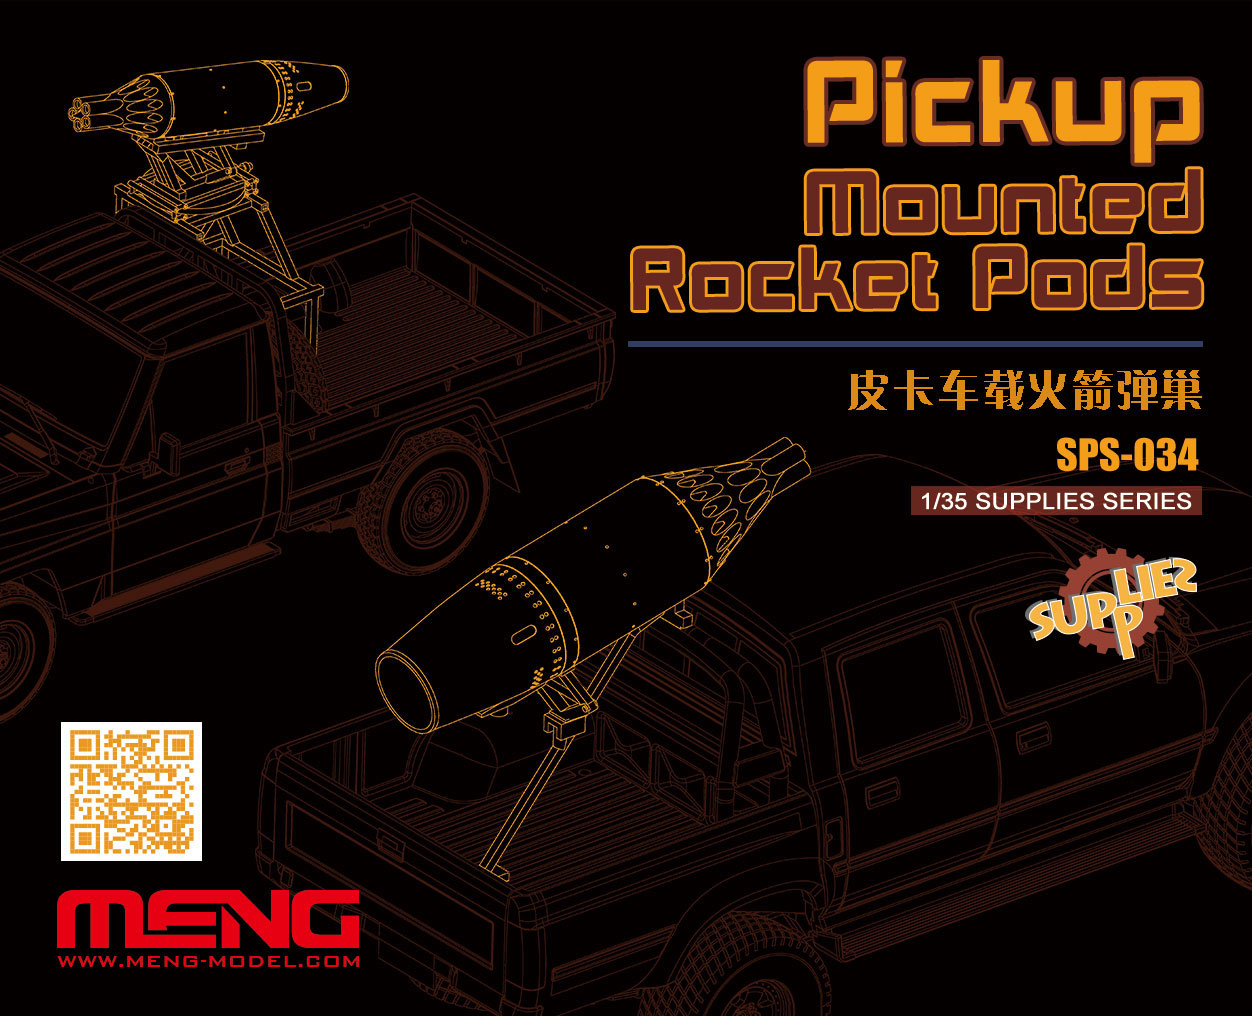 Meng 1/35 PICKUP MOUNTED ROCKET PODS (RESIN)